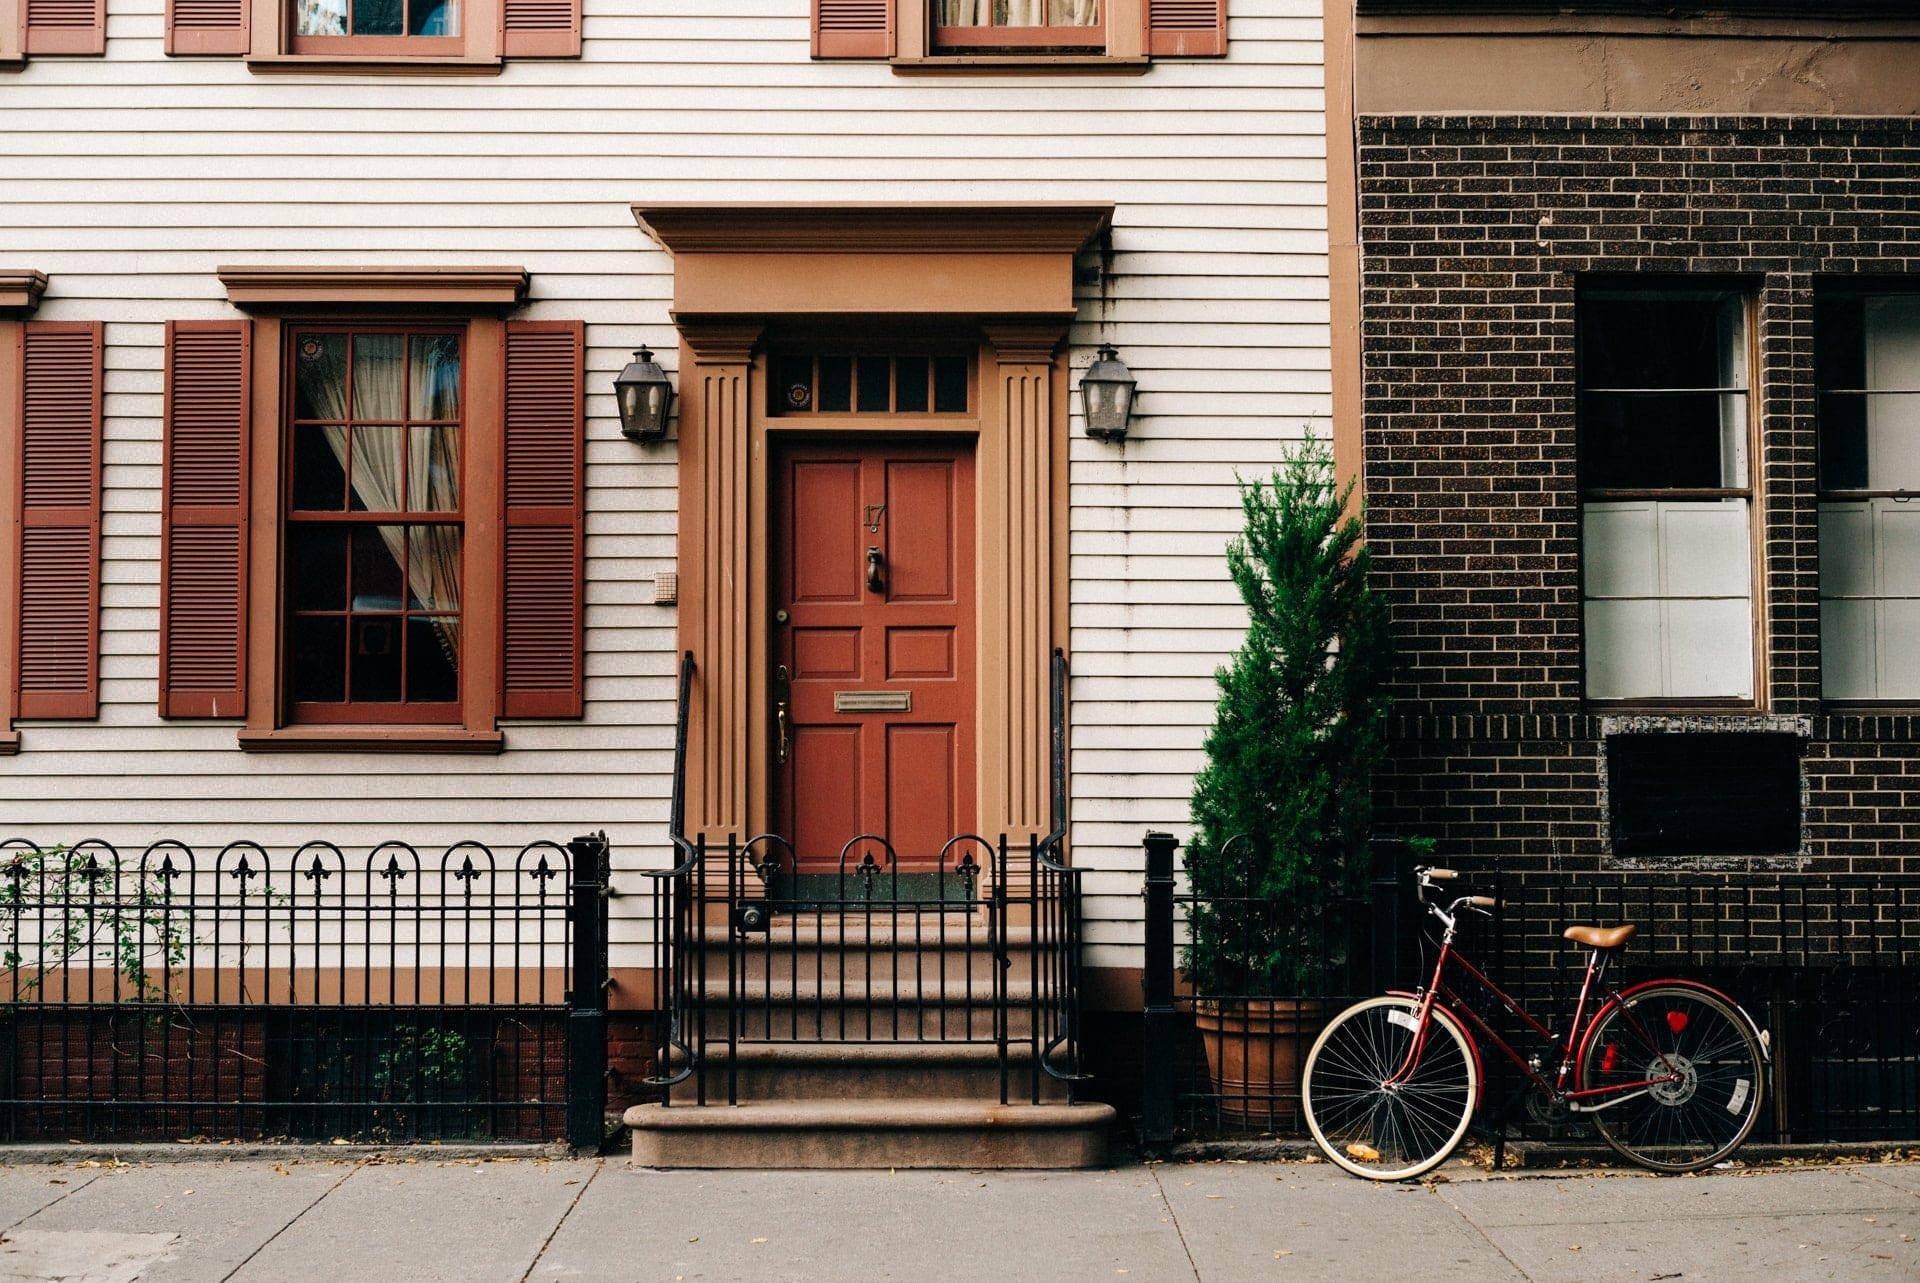 Retro European home in the West Village, New York, United States. Photo by christian koch on Unsplash